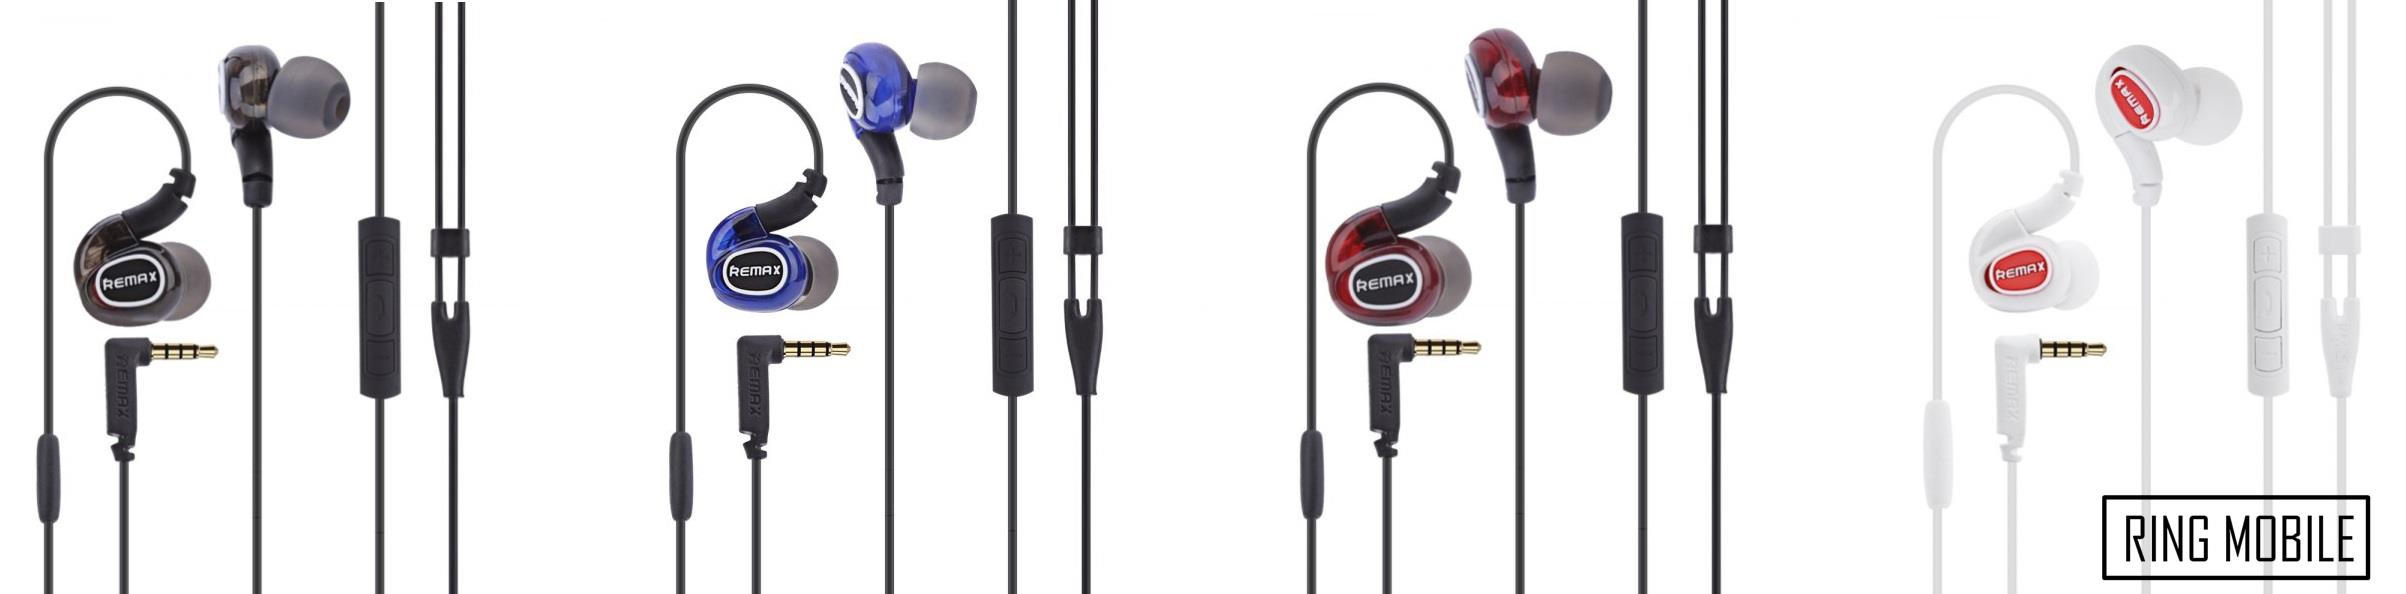 Remax RM-S1 Pro In-Ear Wired Sport Earphone with Mic